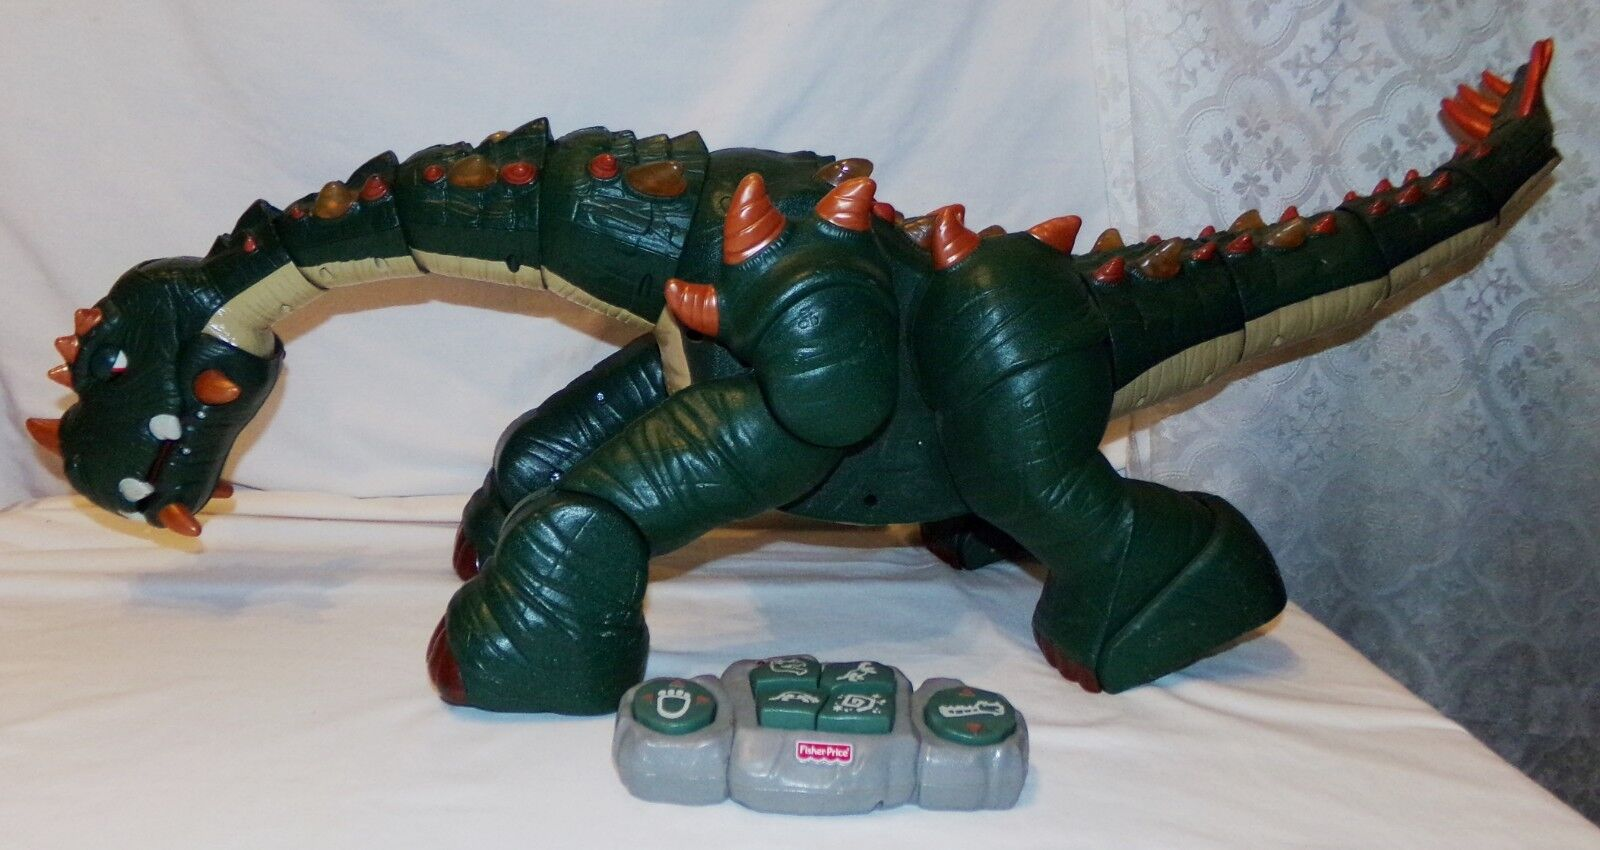 Fisher Price Imaginext Spike the Ultimate Dinosaur Remote Control Toy No Charger